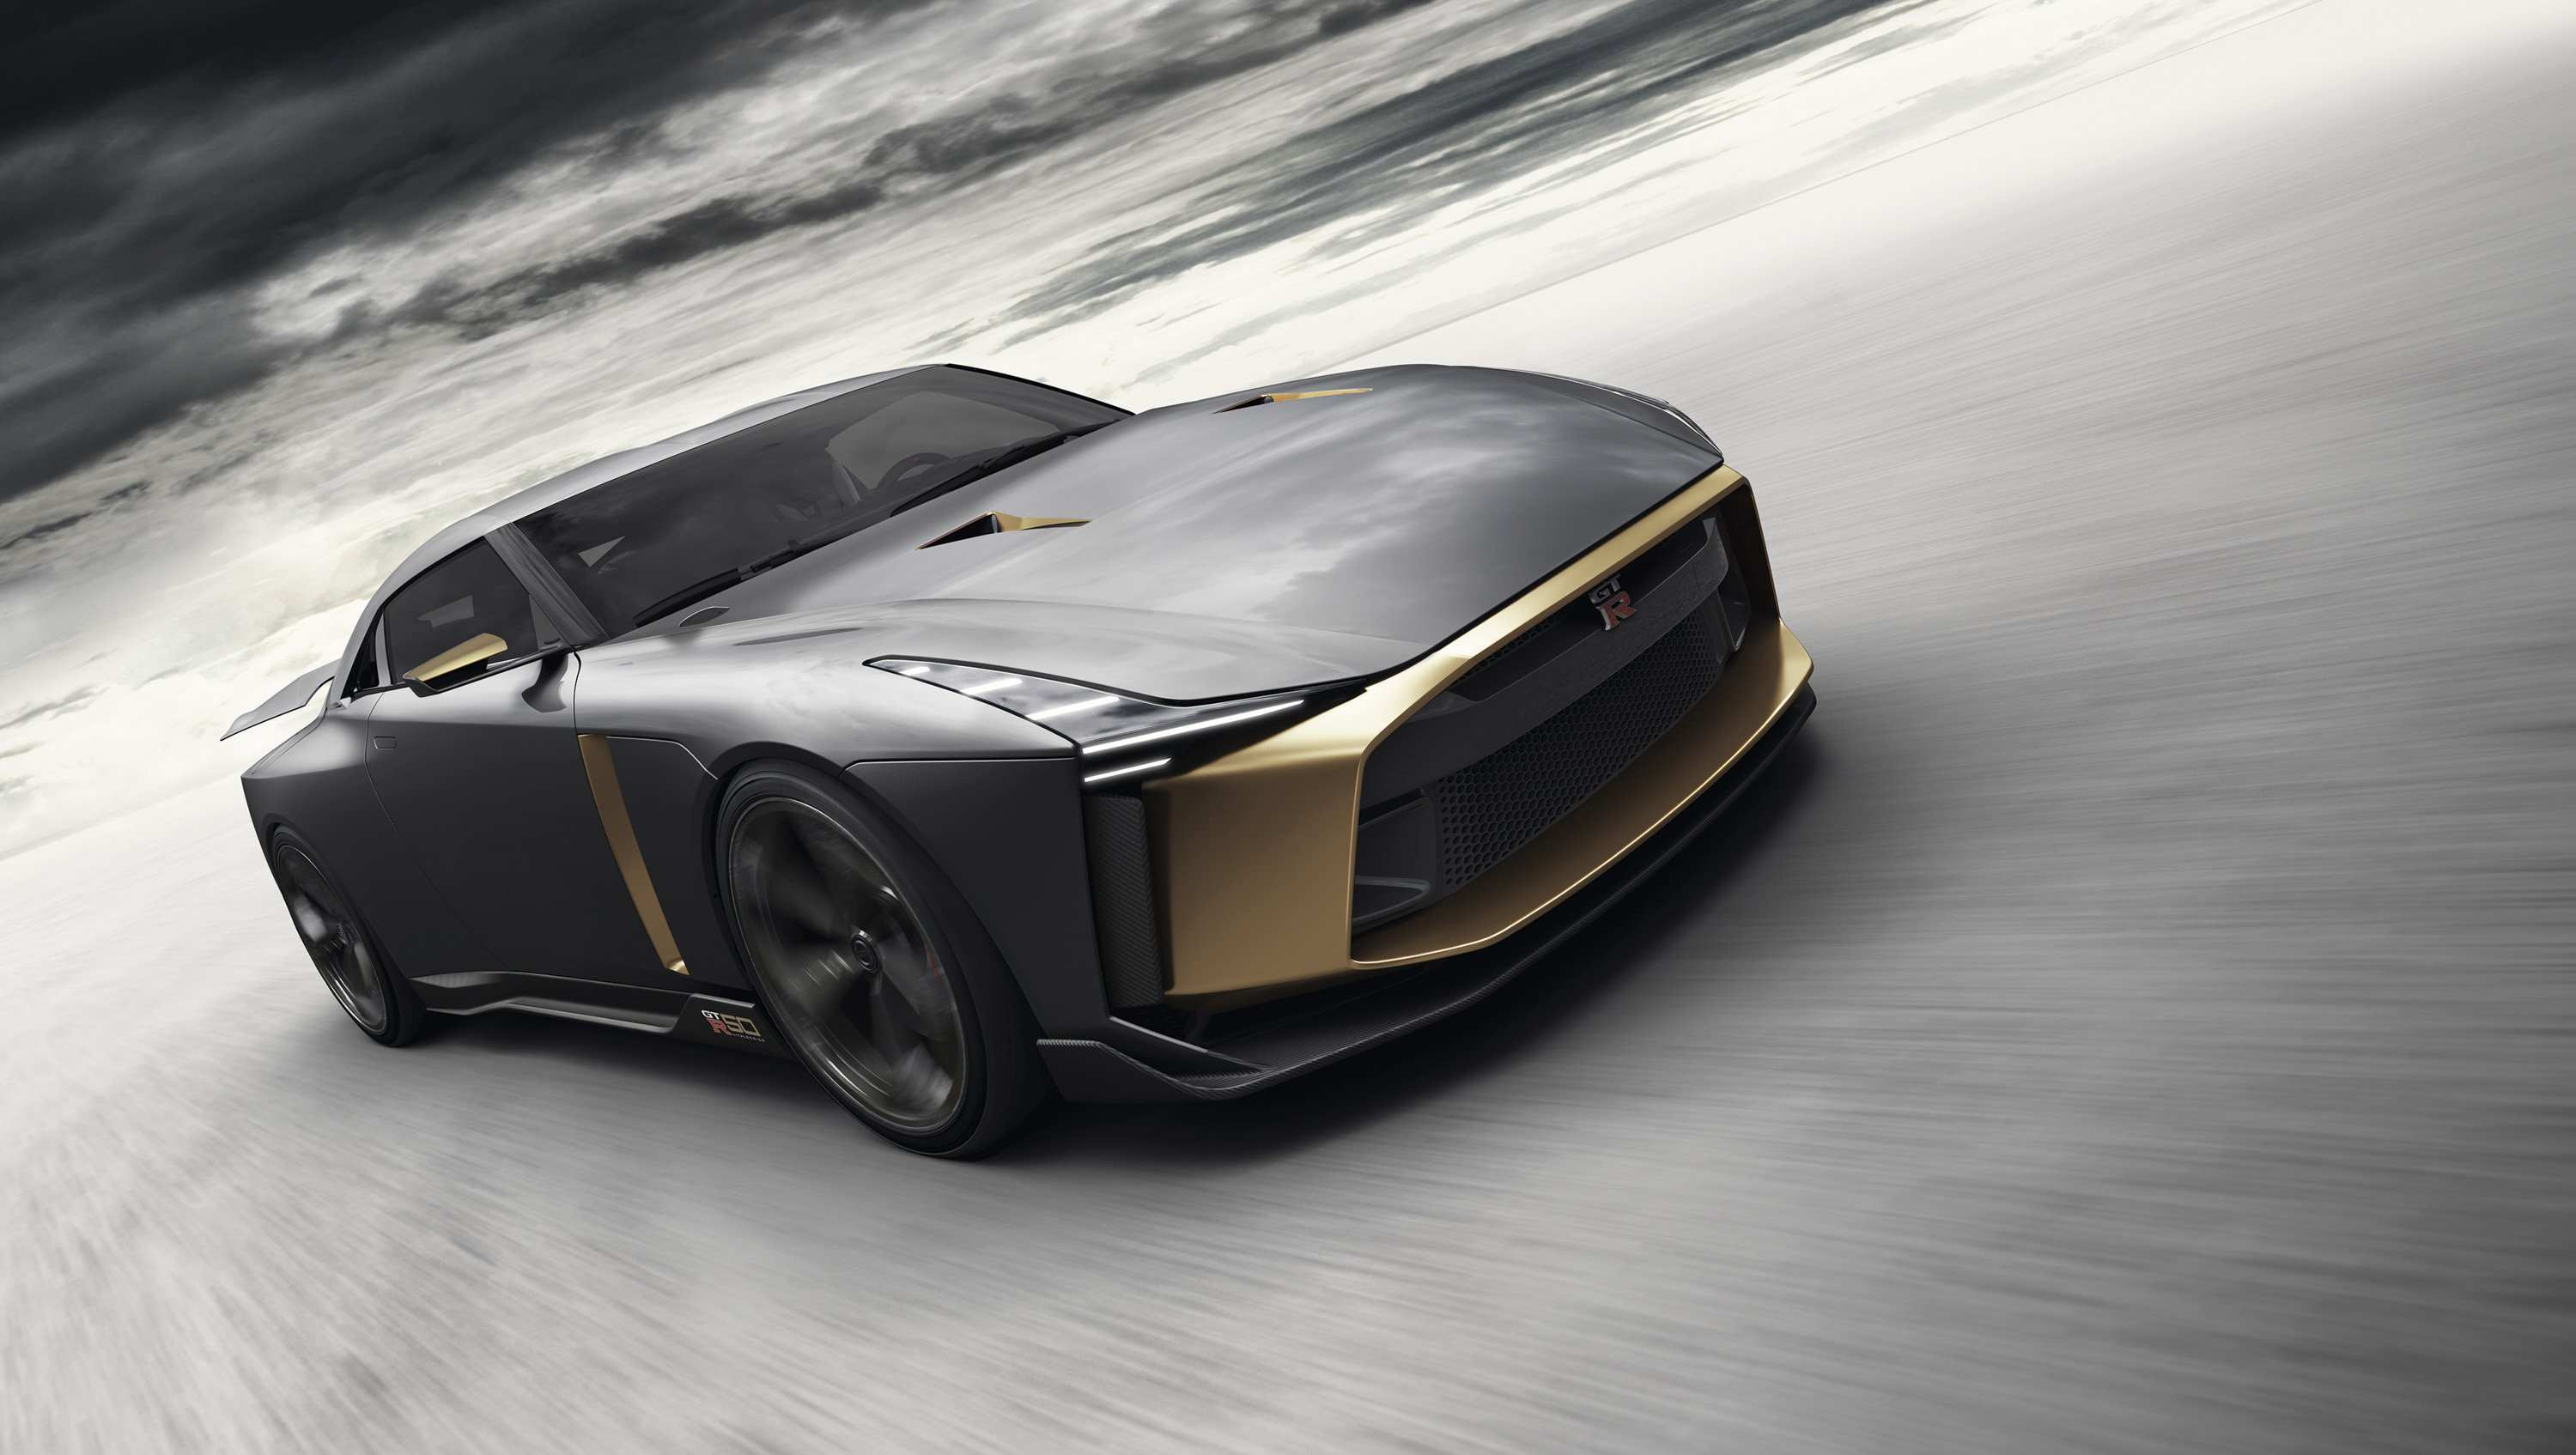 92 Gallery of Nissan Skyline 2020 Concept with Nissan Skyline 2020